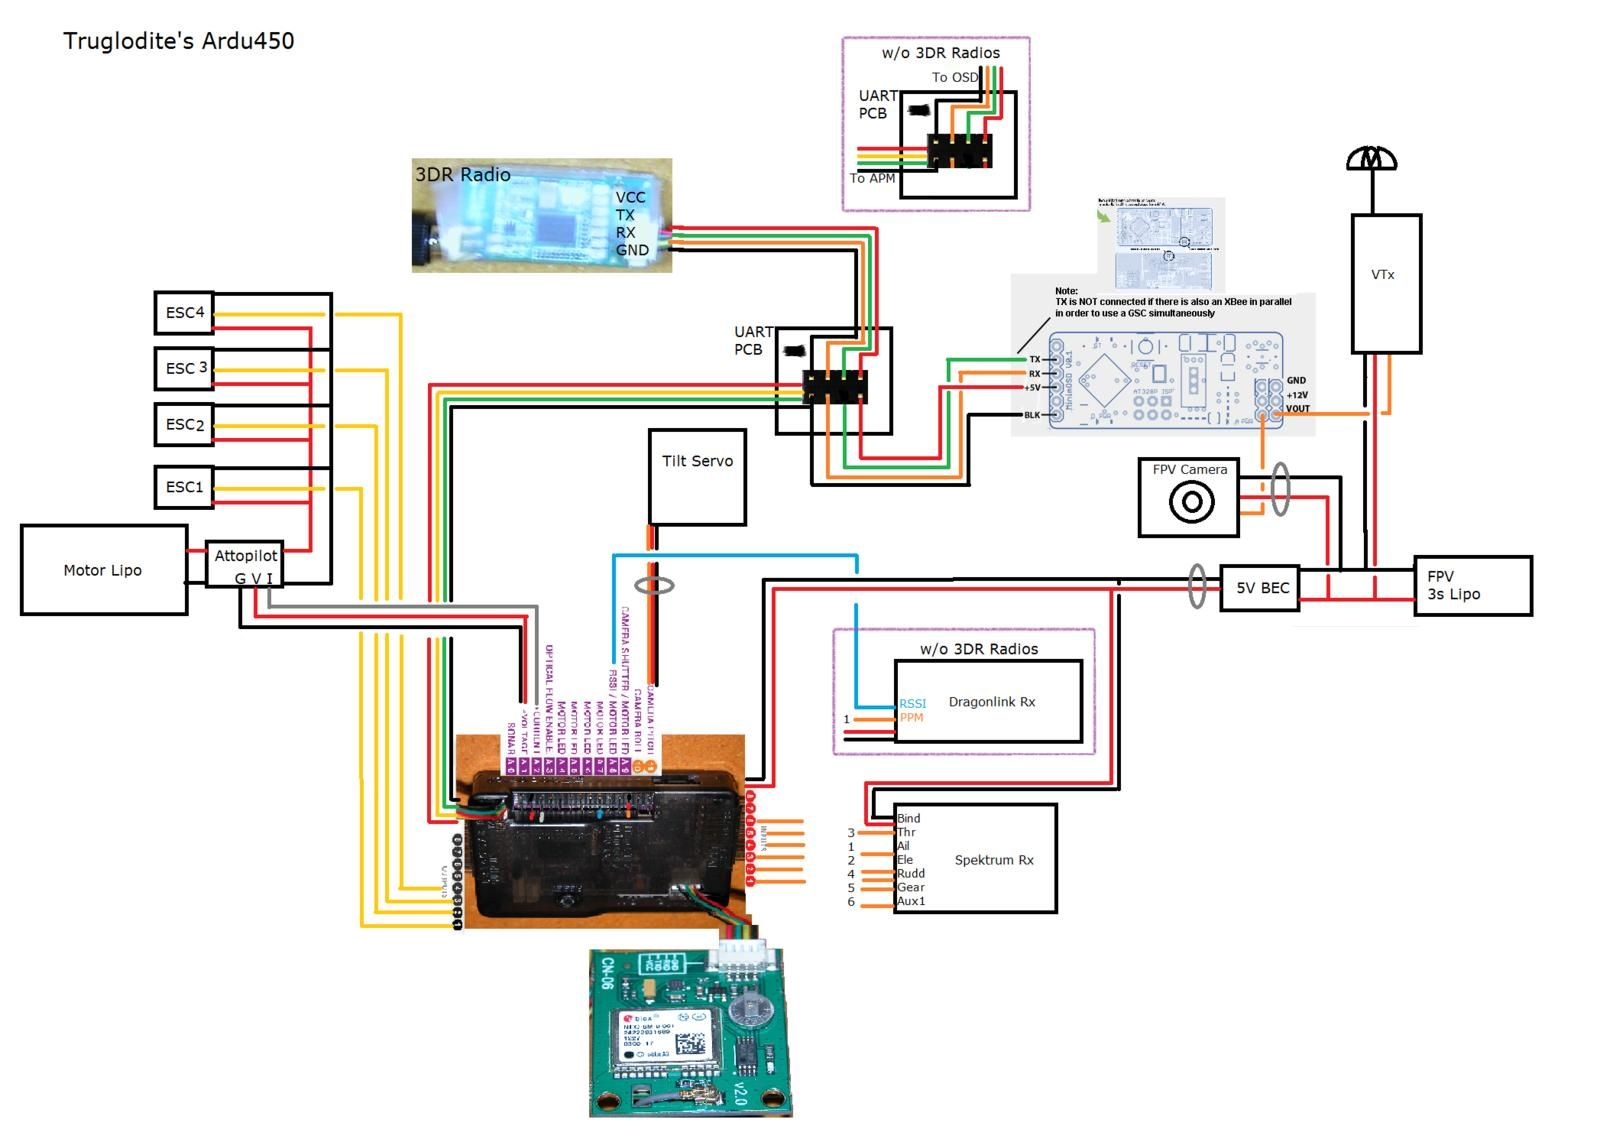 357d395e54b7a9308b5243aa77b4d707 89 best arducopter images on pinterest open source, cameras and apm 2 8 flight controller wiring diagram at letsshop.co